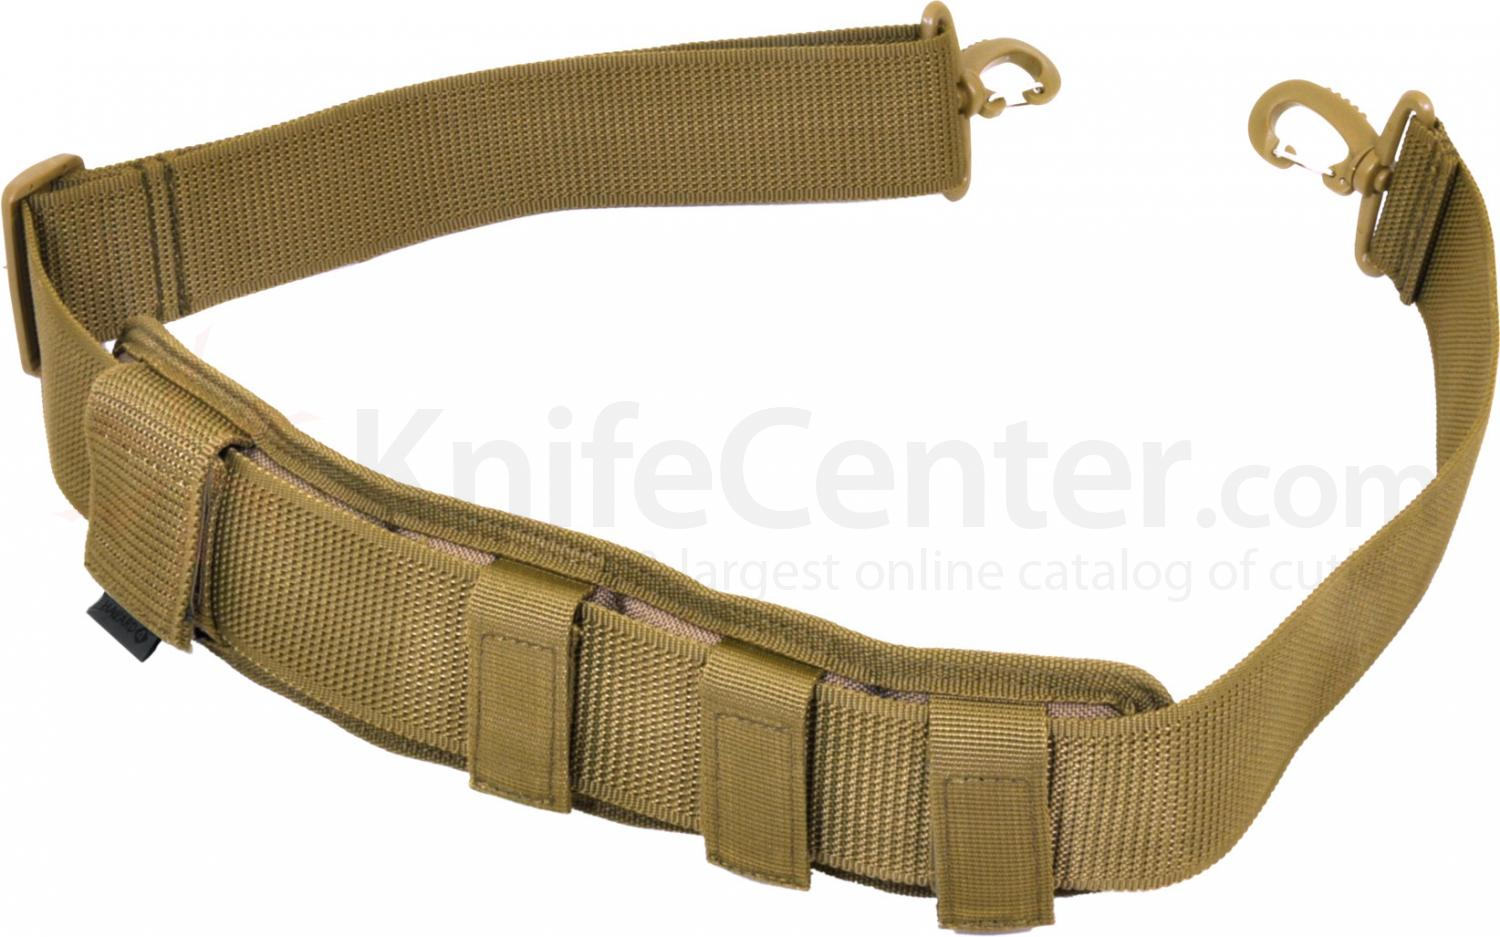 Hazard 4 2 inch Shoulder Strap with Removable Pad, Coyote